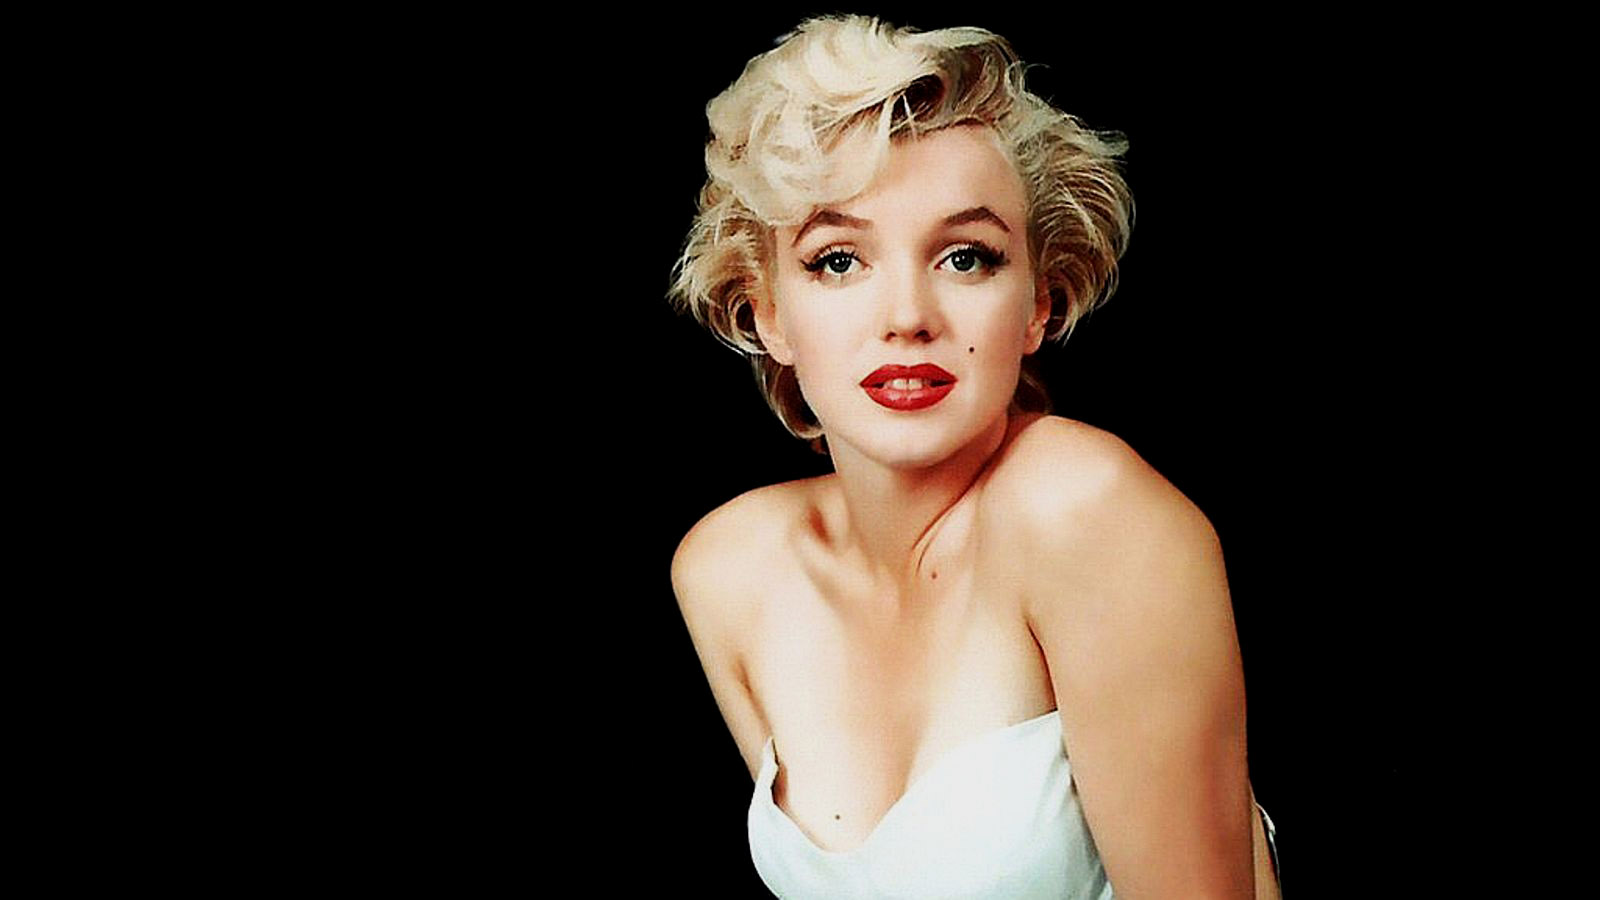 There will never be another like Marilyn Monroe. Born Norma Jeane Mortenson in 1926, Marilyn started her career modelling, followed with tiny, ...